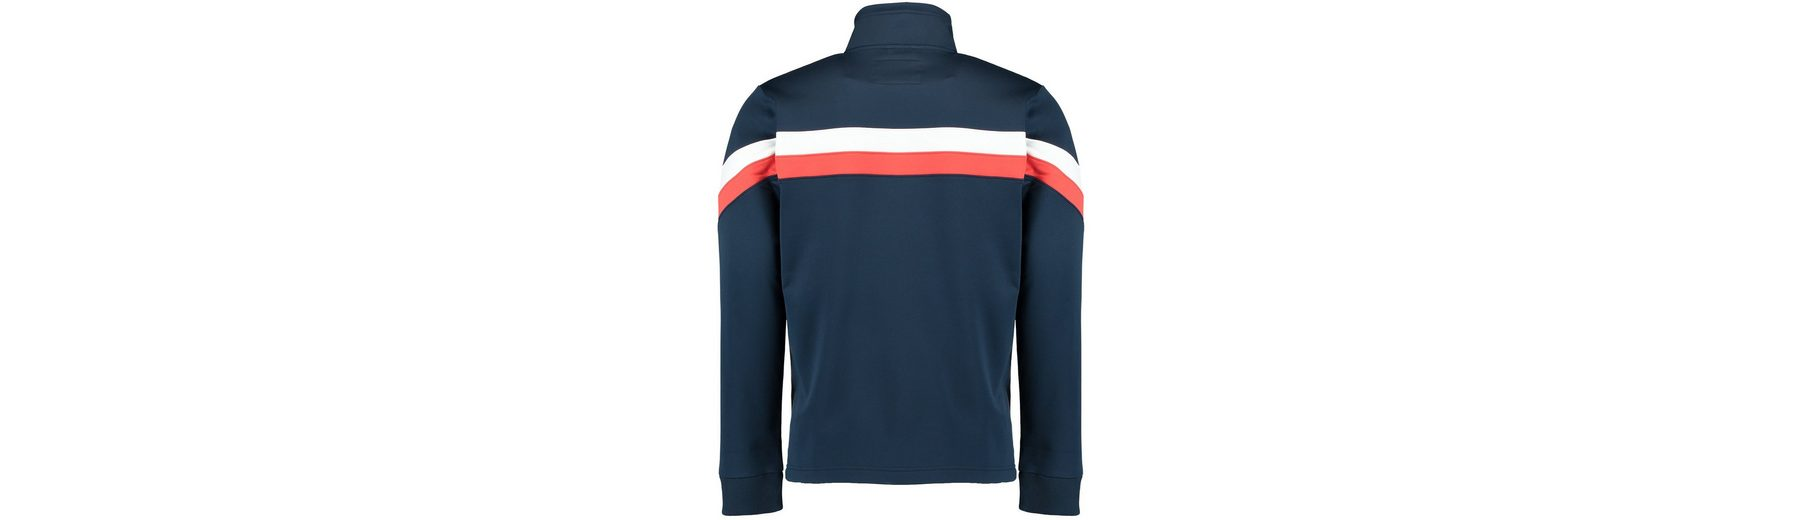 Retro Full O'Neill Zip Full Retro O'Neill Full O'Neill Fleece Retro Zip Fleece Retro Fleece Full Zip O'Neill Fleece v1AOxRnW